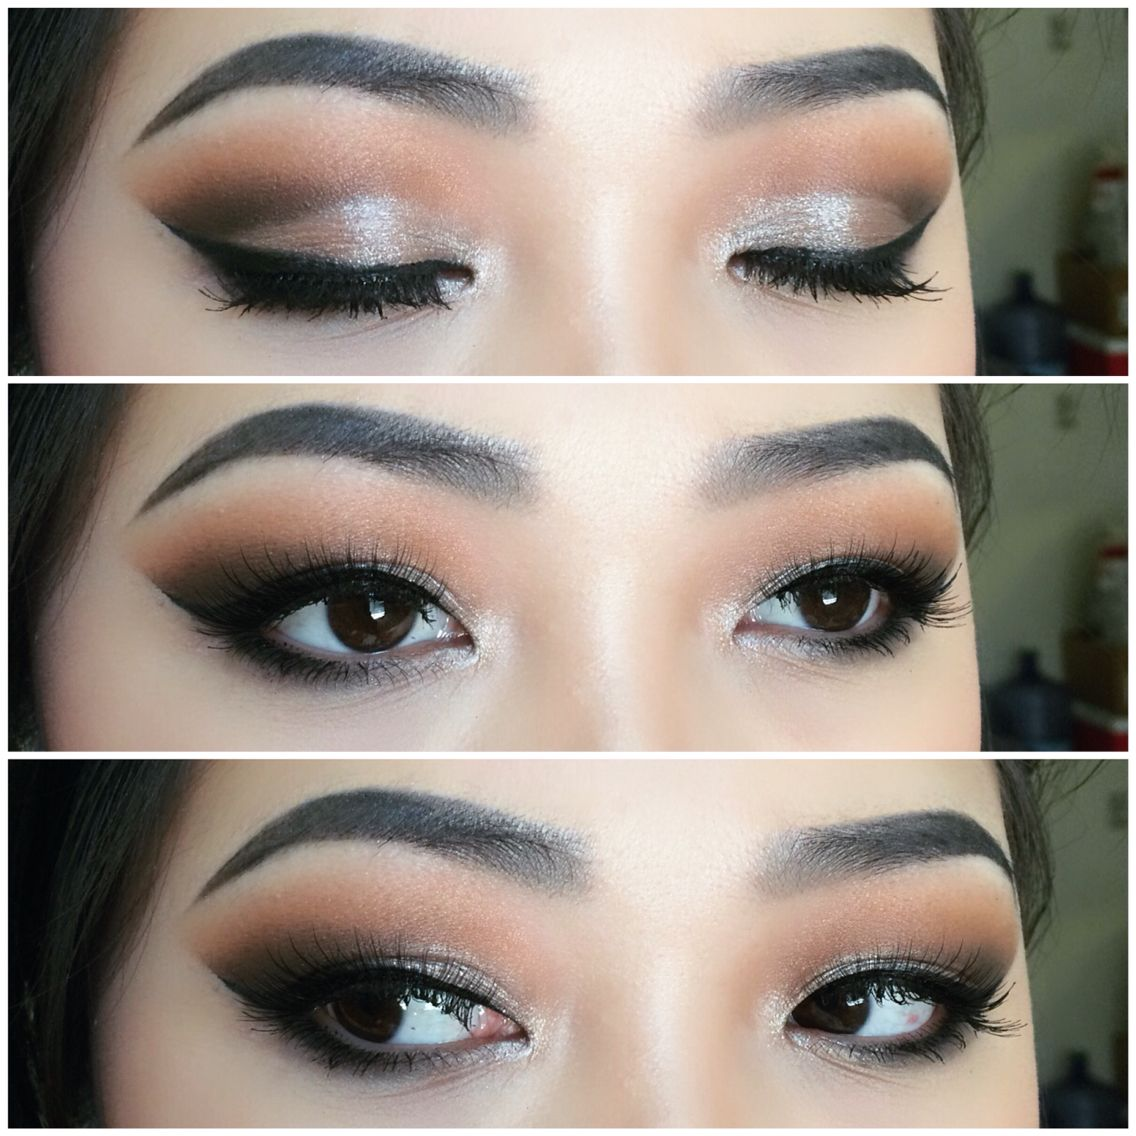 Makeup For Asian Eyes Extending Your Liner Along With Your Eyeshadow Will Elongate Your Eyes Asian Eye Makeup Eye Makeup Tutorial Asian Eyes